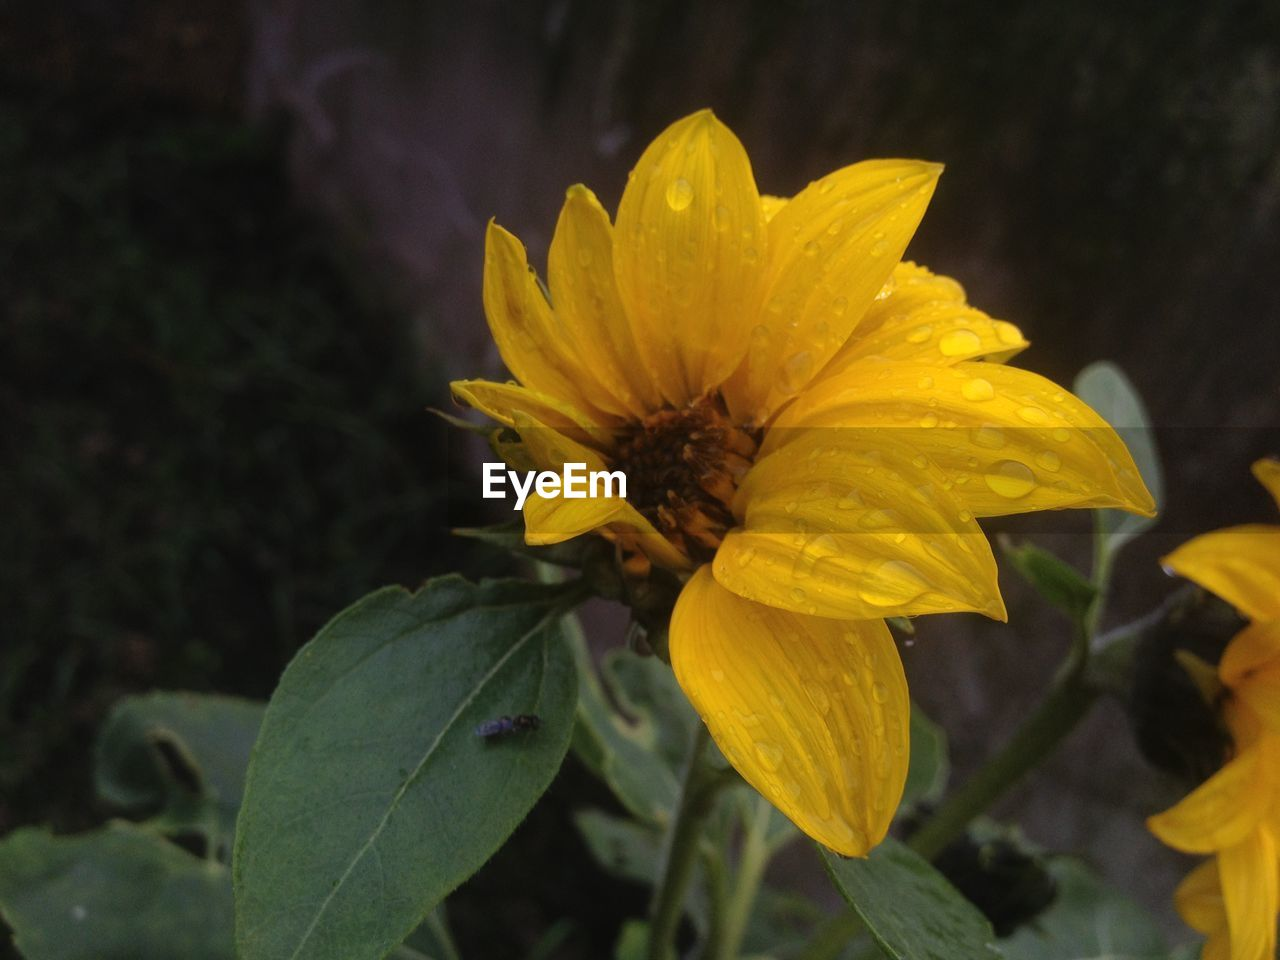 flower, petal, fragility, flower head, yellow, beauty in nature, growth, freshness, nature, blooming, plant, focus on foreground, outdoors, no people, close-up, day, leaf